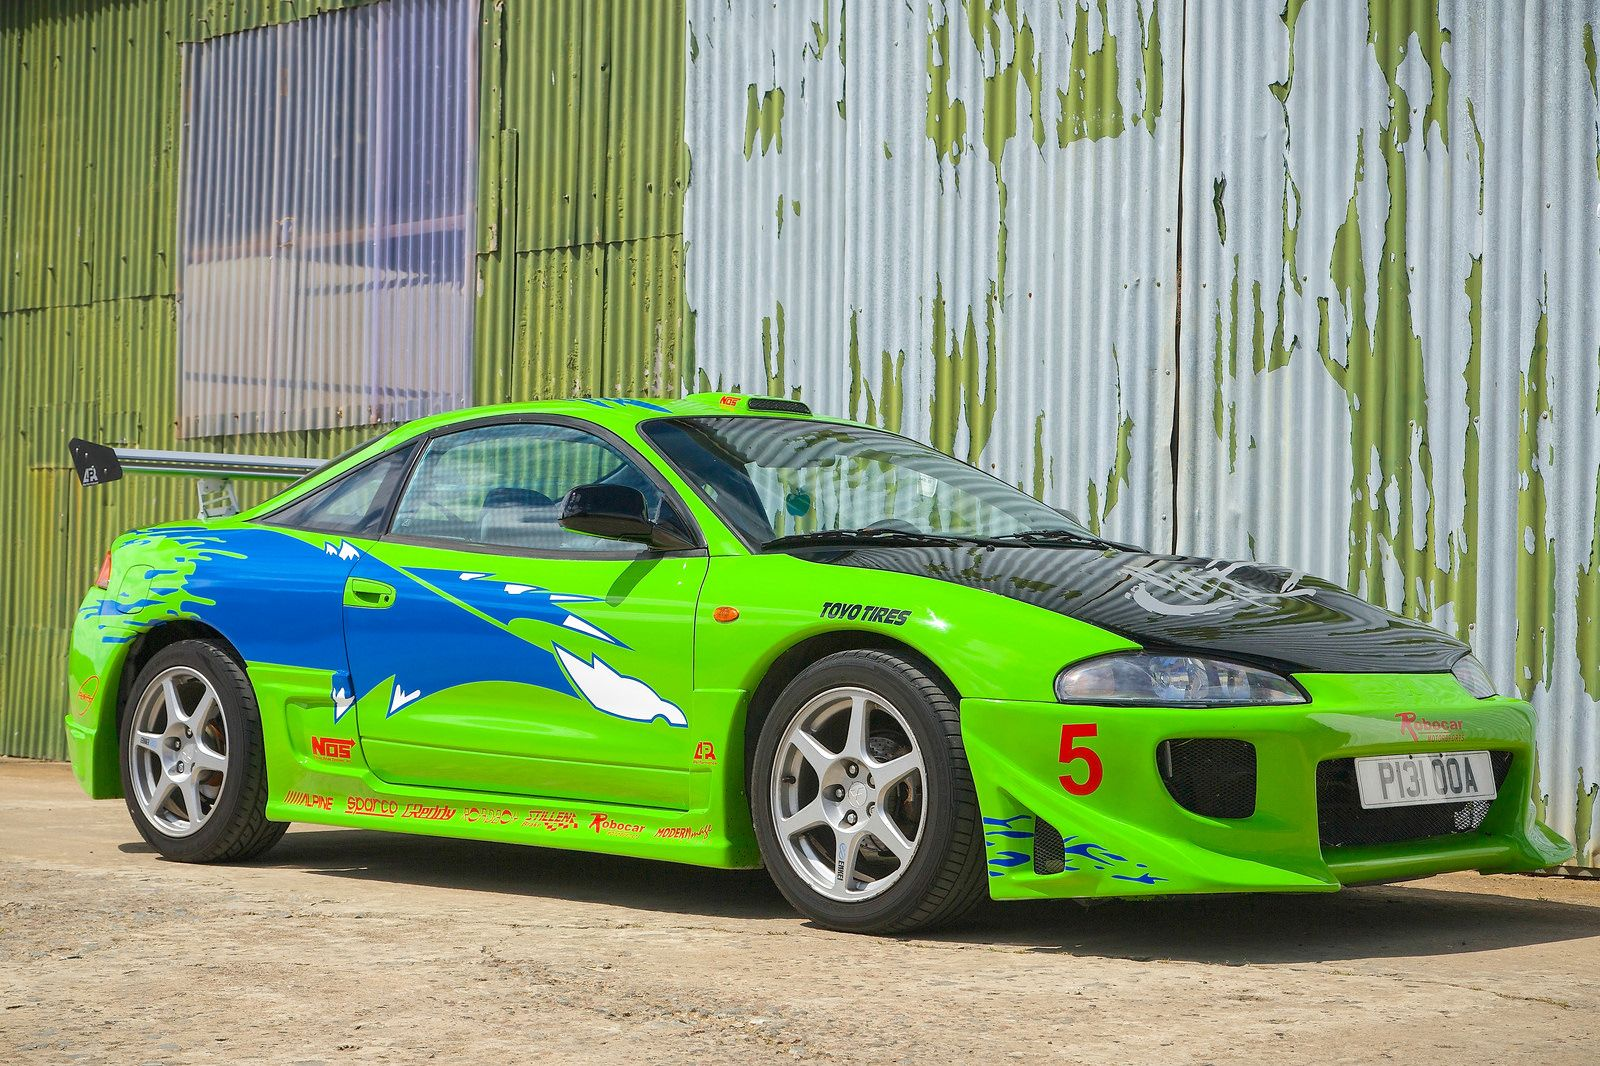 Paul Walker Mitsubishi Eclipse Crazy Car Mods Mitsubishi Eclipse